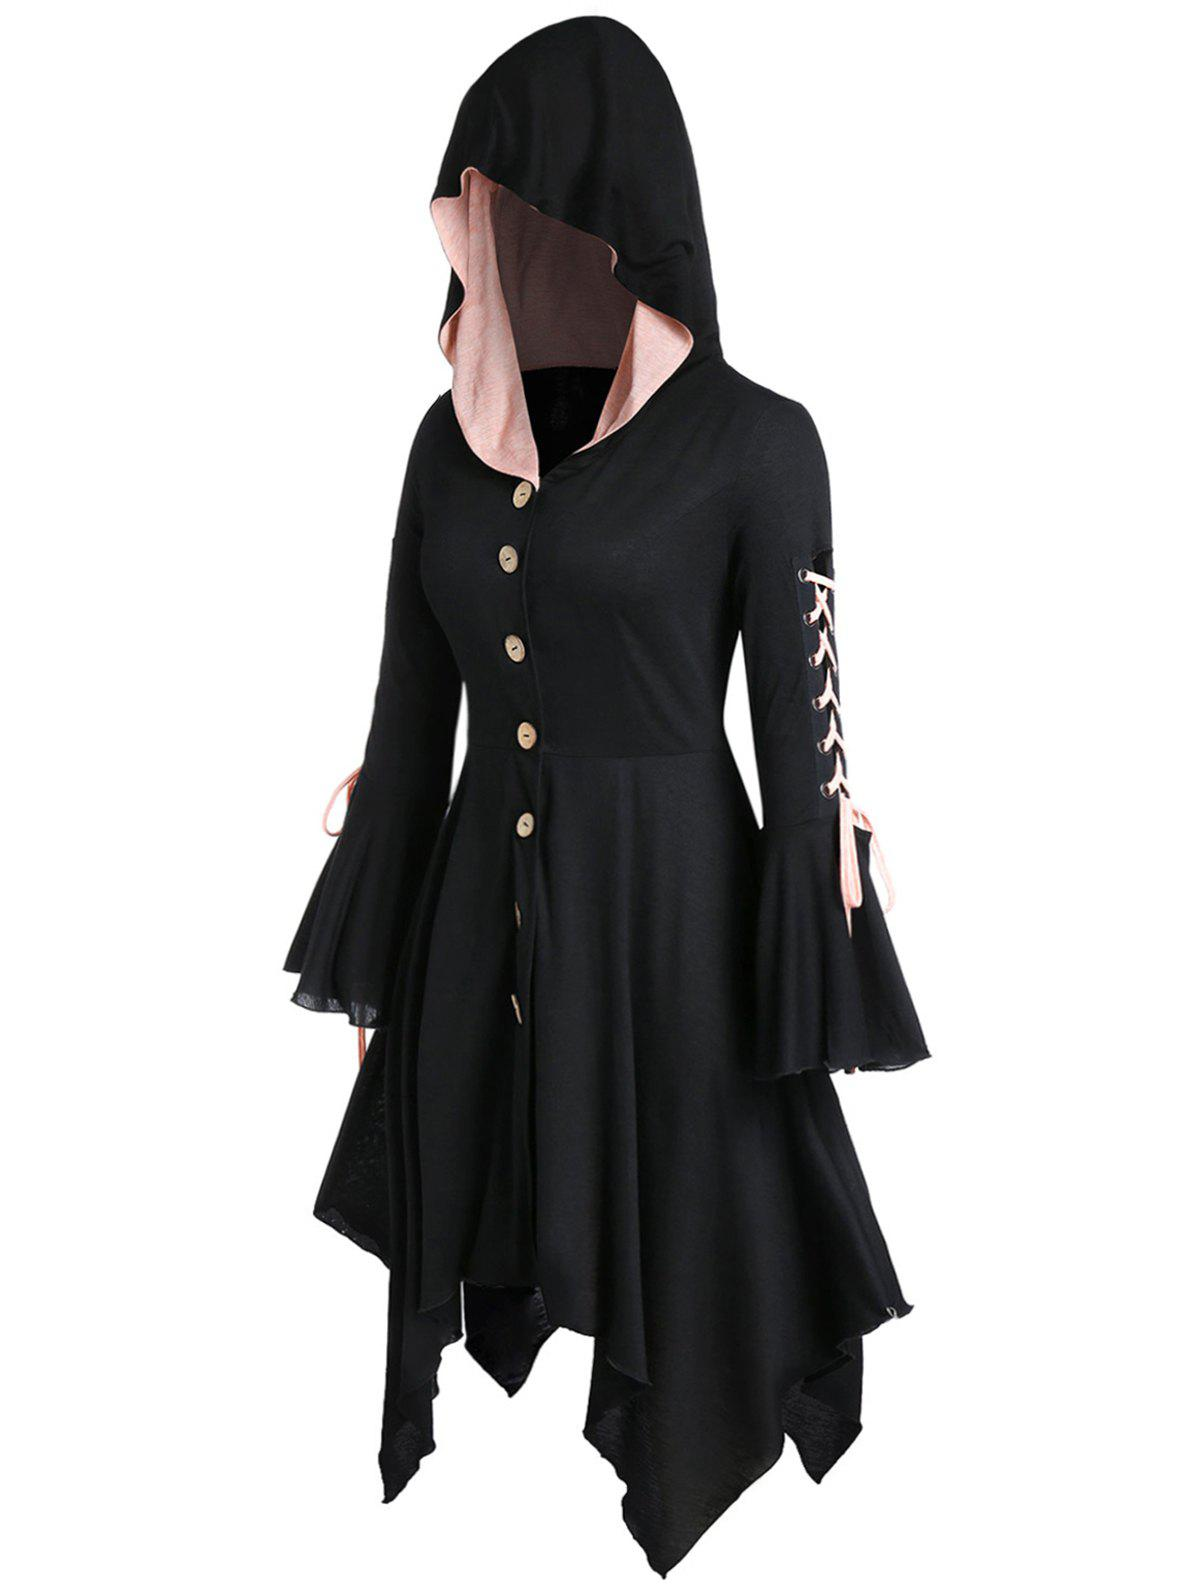 Trendy Plus Size Hooded Lace Up Handkerchief Halloween Coat